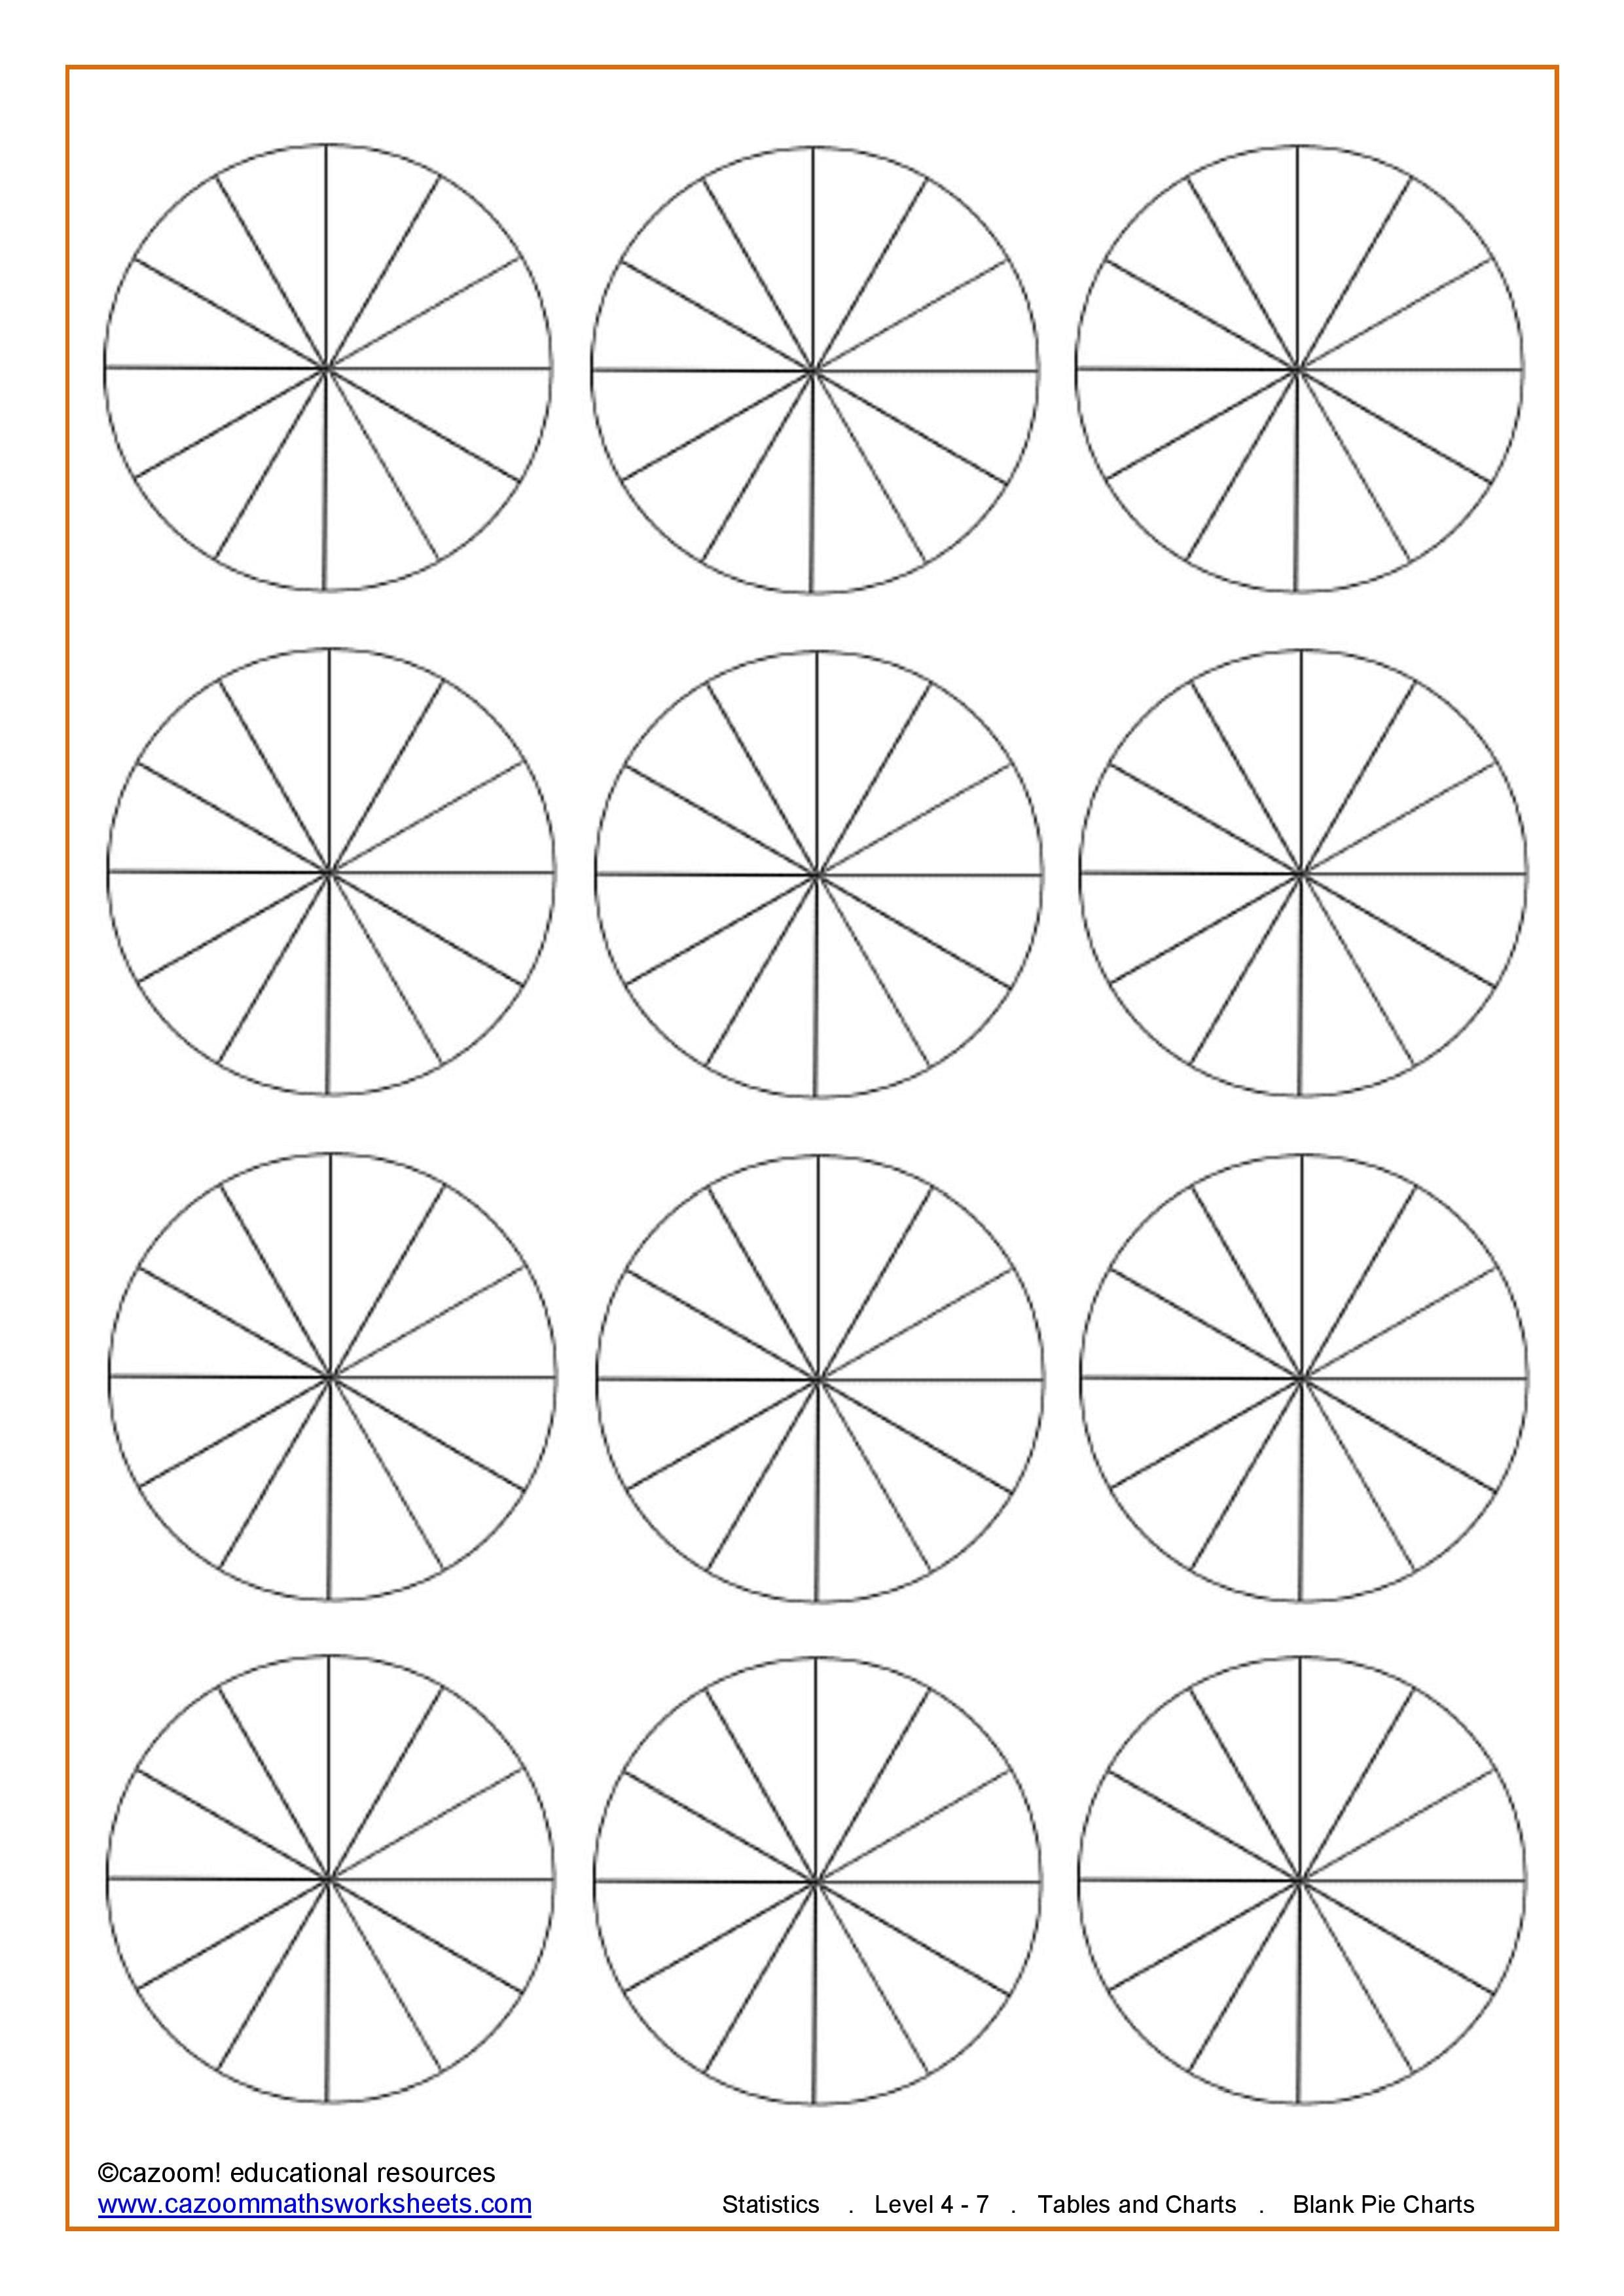 Maths Teaching Resources | Charts | Math Lessons, Teaching Resources - Free Printable Pie Chart